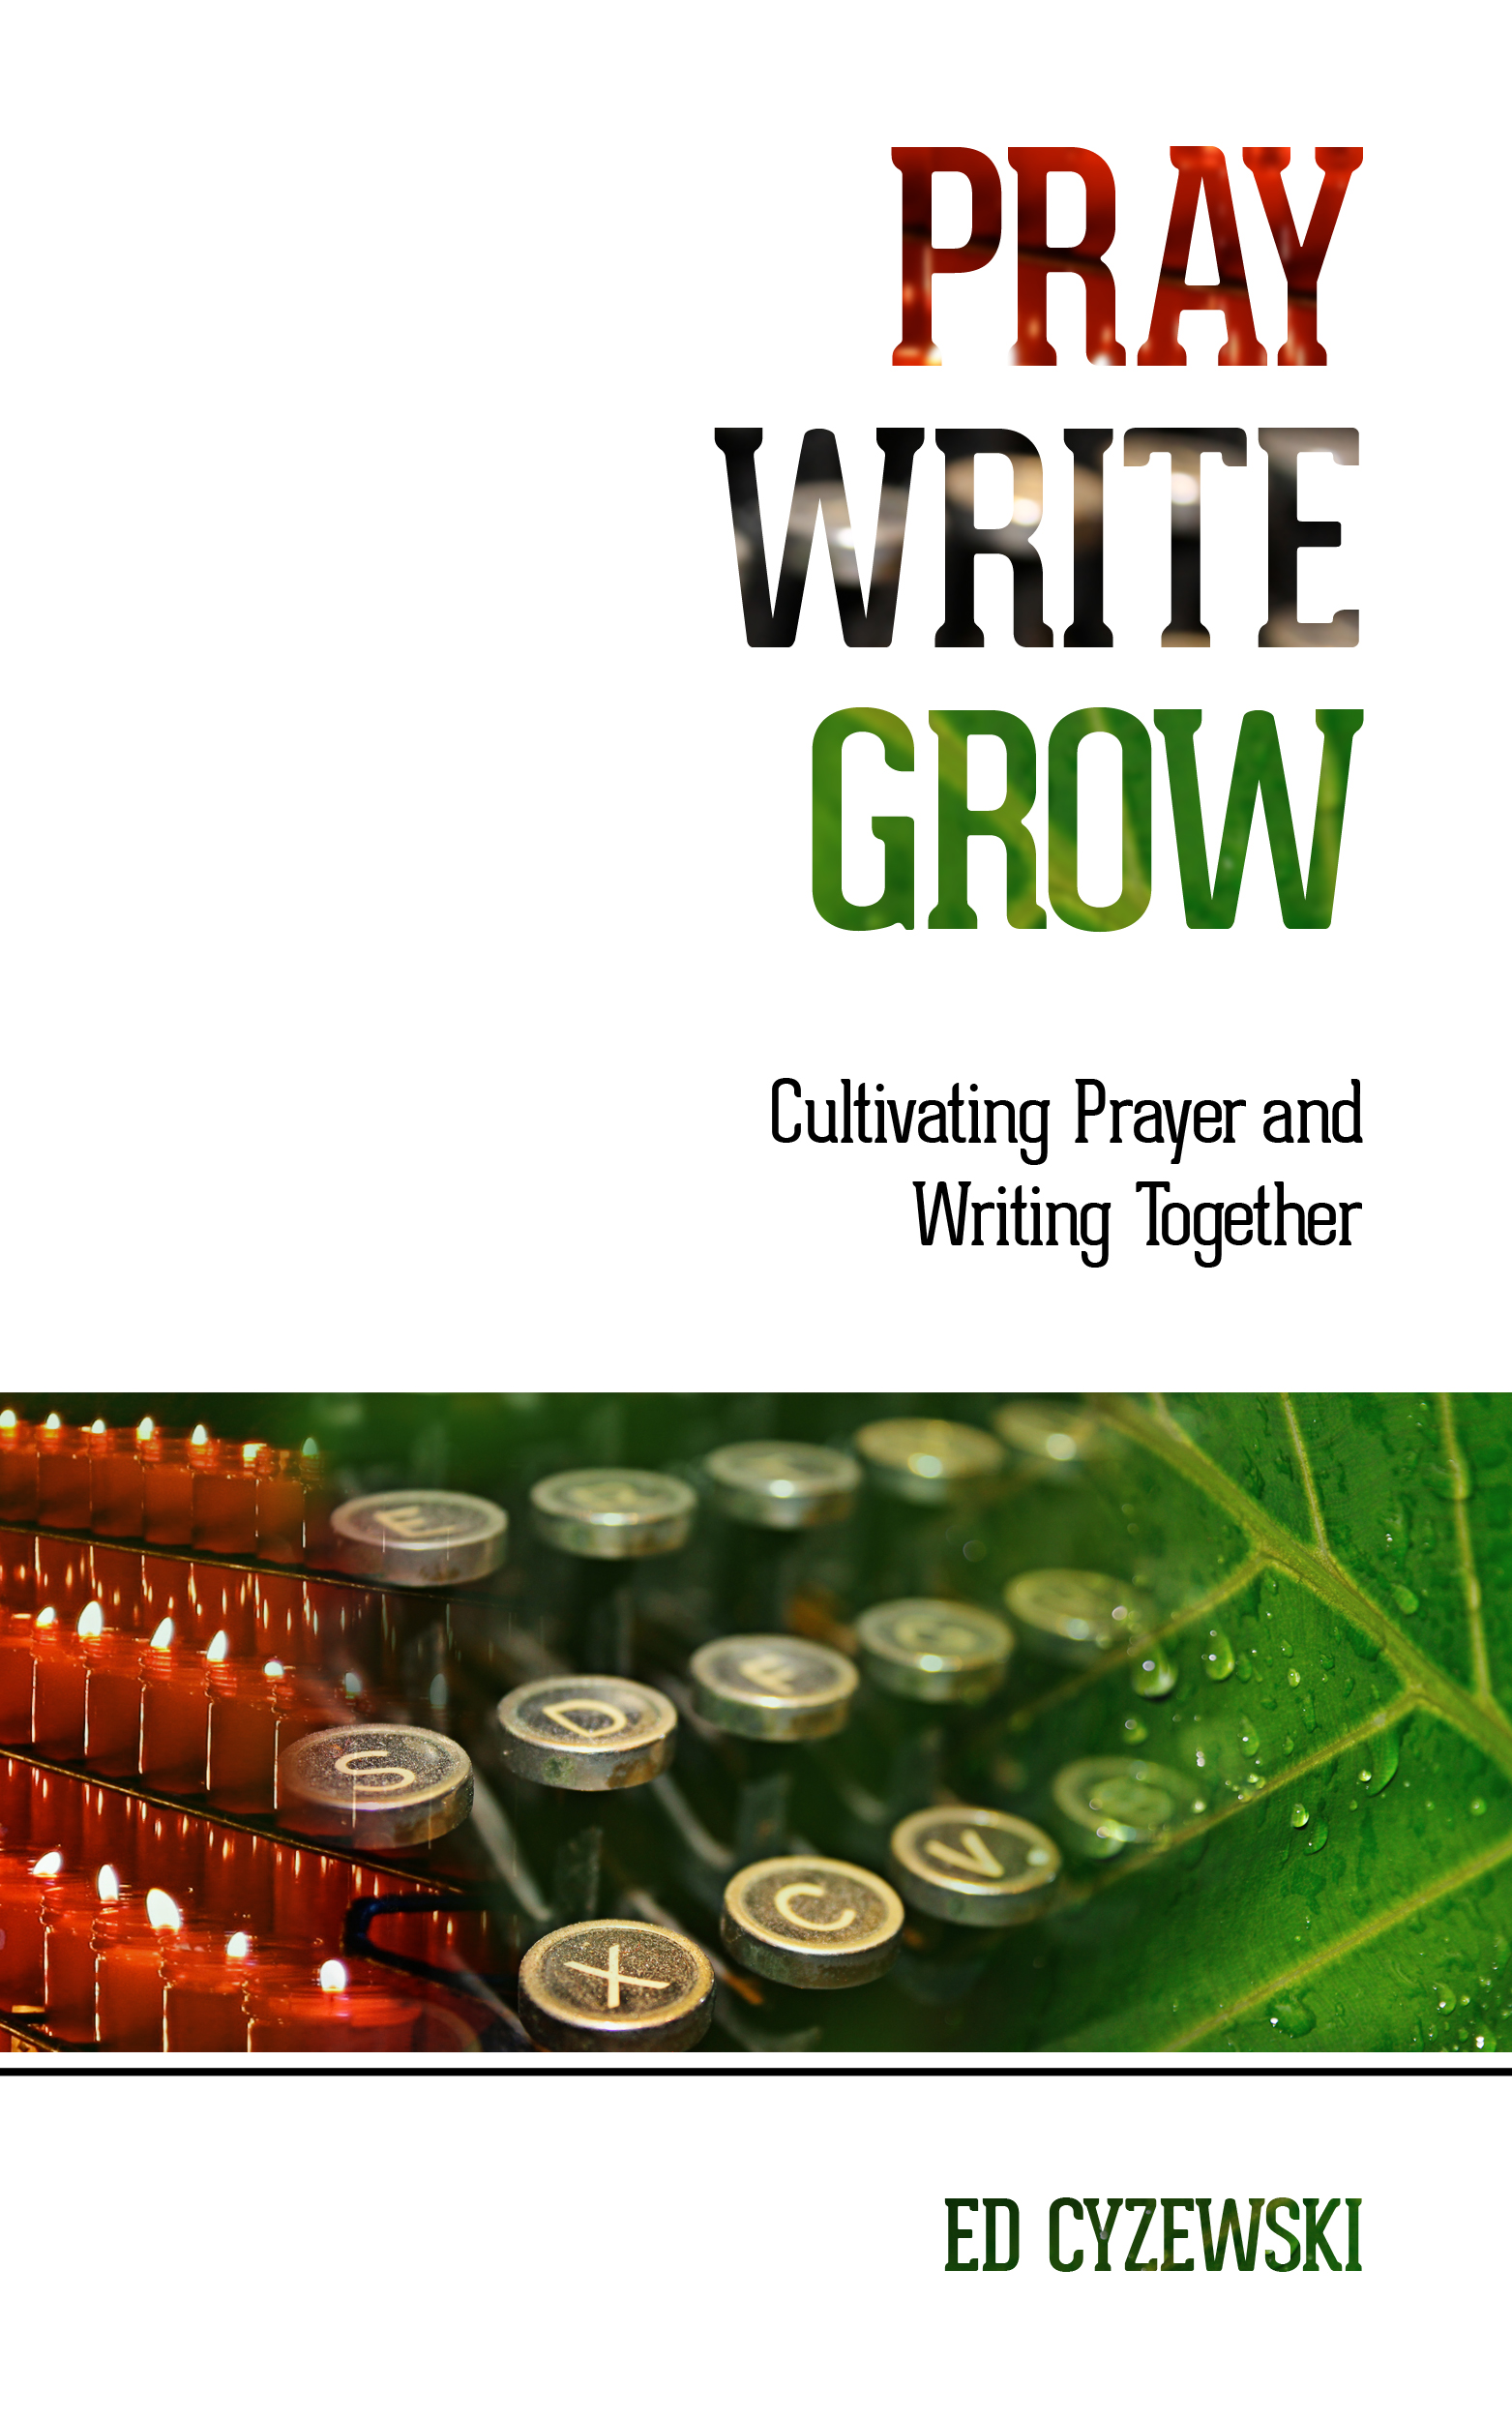 Order Pray, Write, Grow!